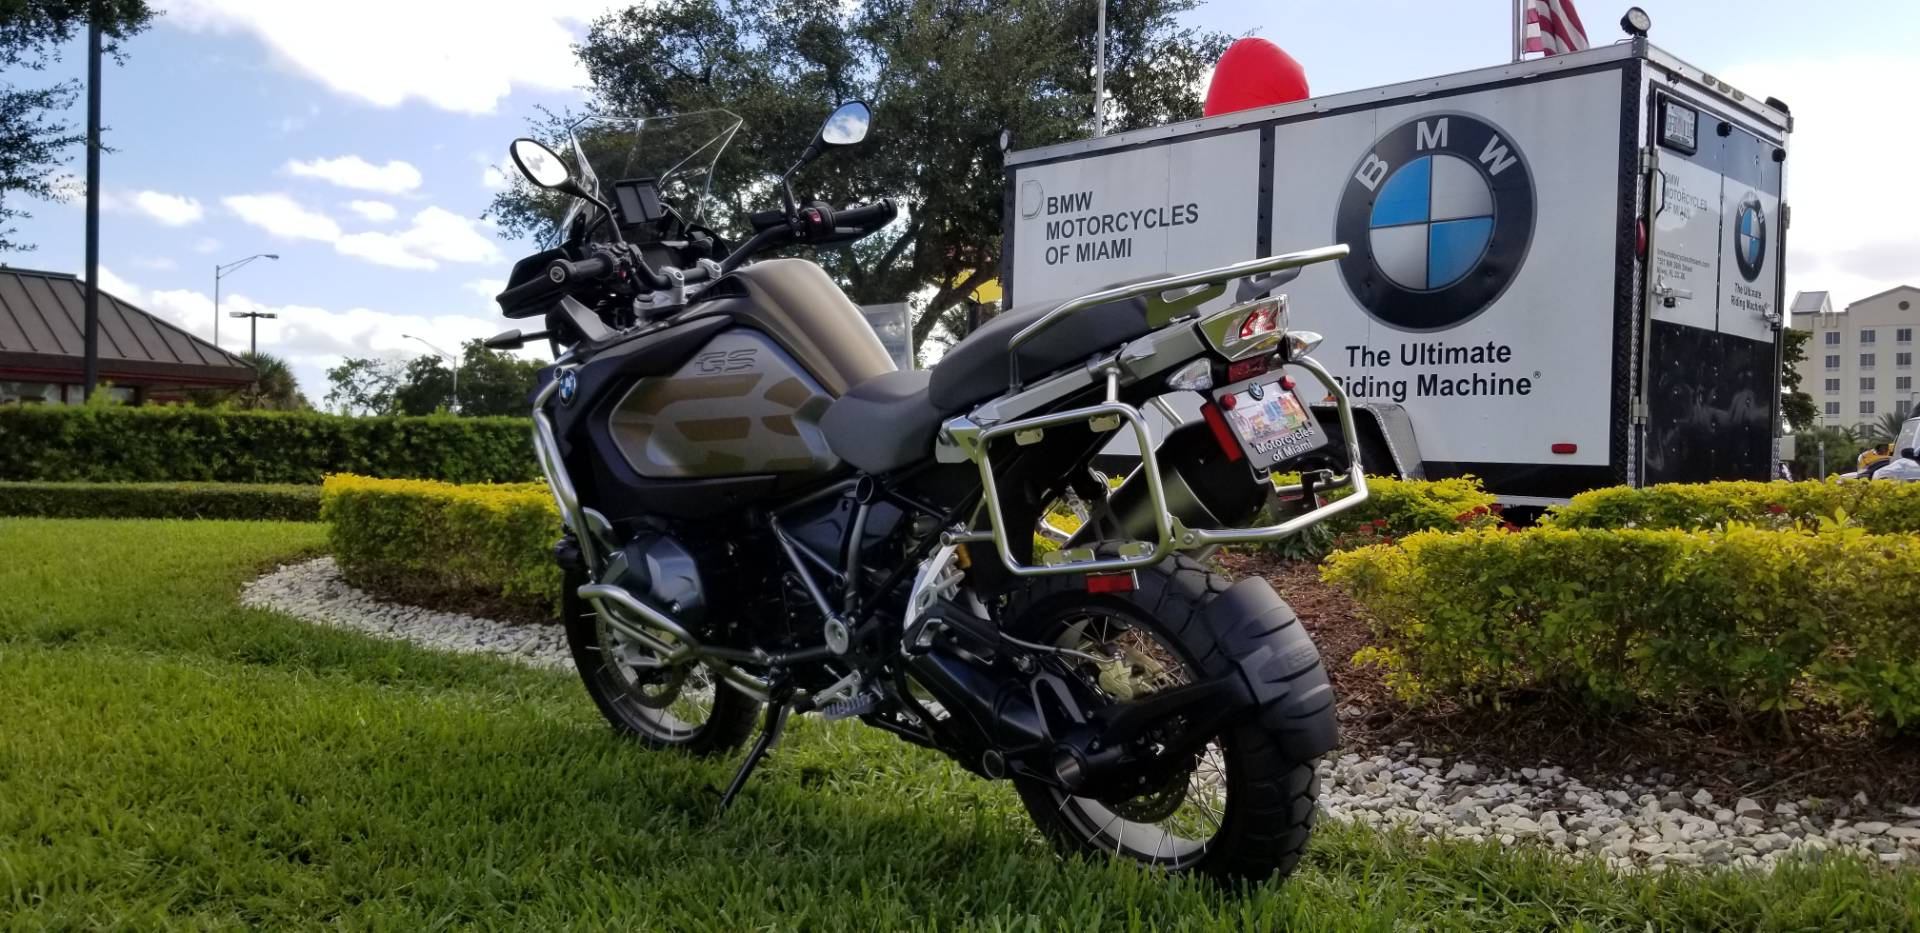 New 2019 BMW R 1250 GSA for sale, BMW for sale R 1250GSA, BMW Motorcycle R1250GSA, new BMW 1250GS Adventure, R1250GSAdventure, BMW Adventure, BMW Motorcycles of Miami, Motorcycles of Miami - Photo 14